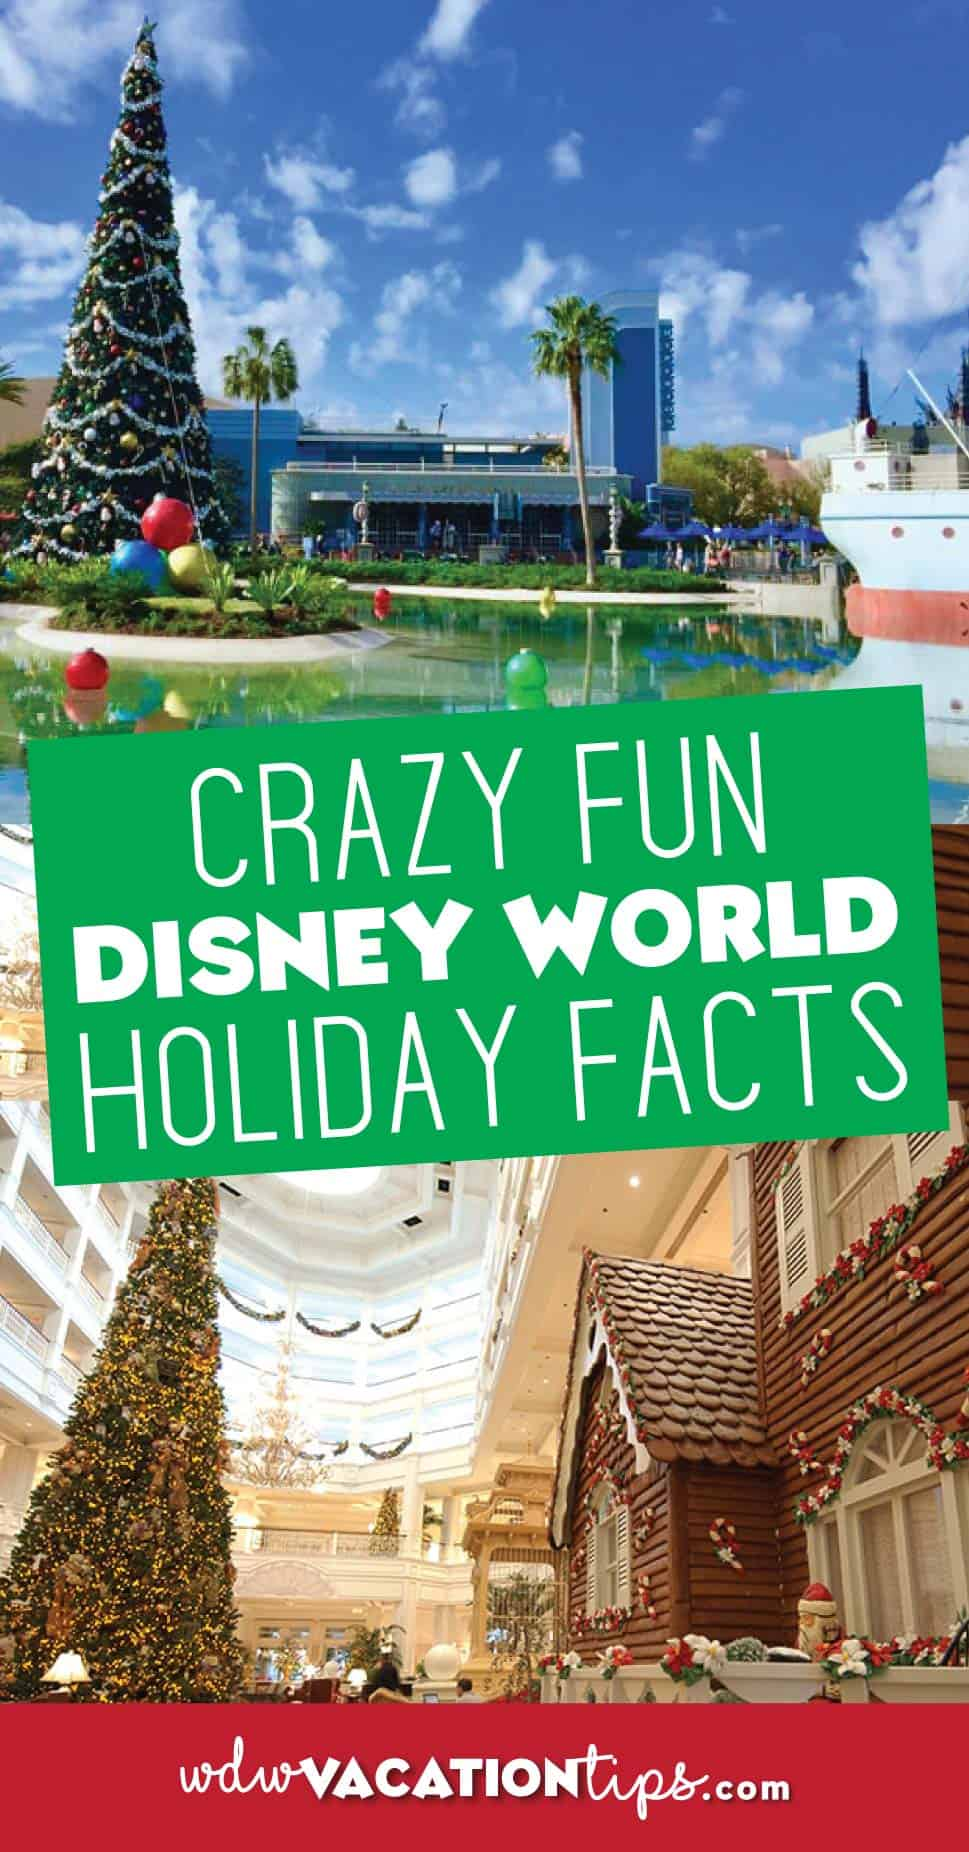 Crazy fun disney world holiday facts